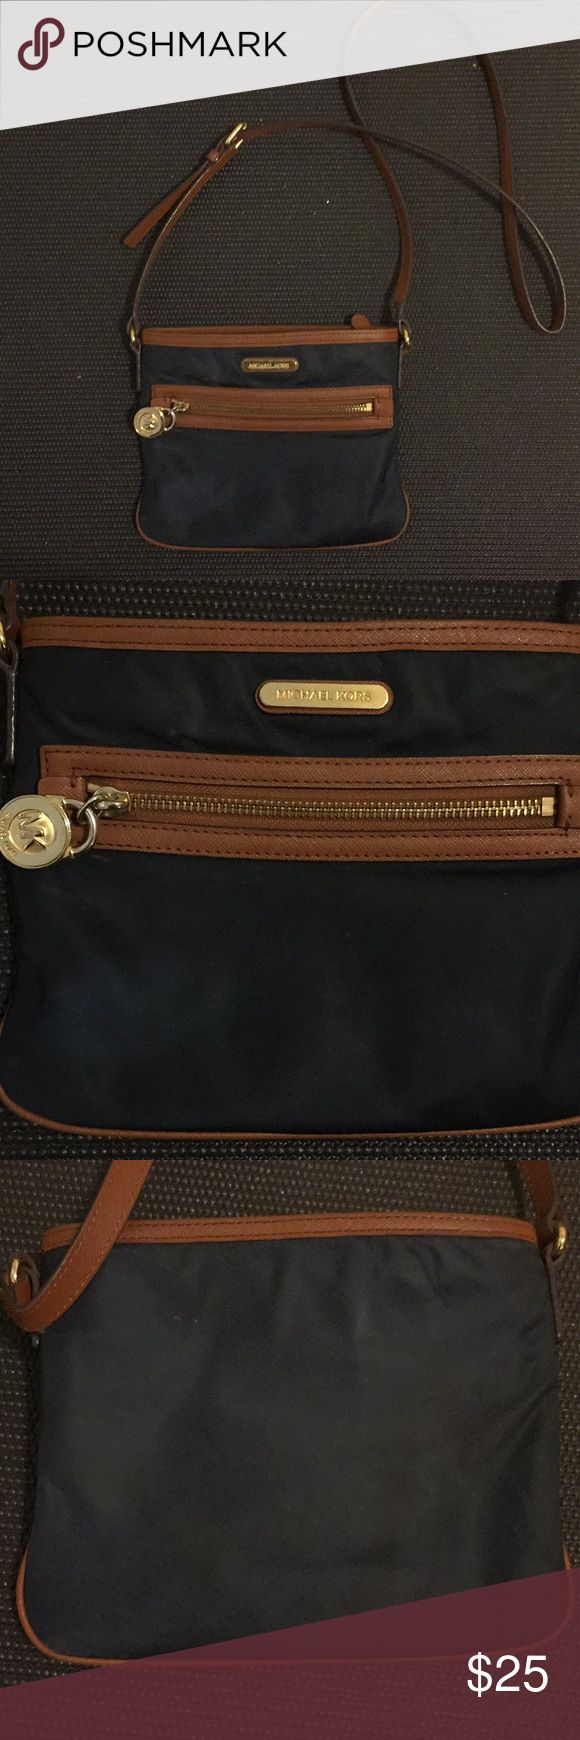 Michael Kors navy blue crossbody Pre loved Michael Kors nylon and leather crossbody bag.  Is a super nice navy blue nylon and light brown leather. Gold zipper and accents with Michael Kors lock zipper pull on front. Has normal wear and tear. Interior of bag doesn't have stains. Small scuffing on corners of the bag. The strap is in good condition. Just has the start of a little bit of cracking in the leather. Otherwise just has normal wear and tear. Michael Kors Bags Crossbody Bags